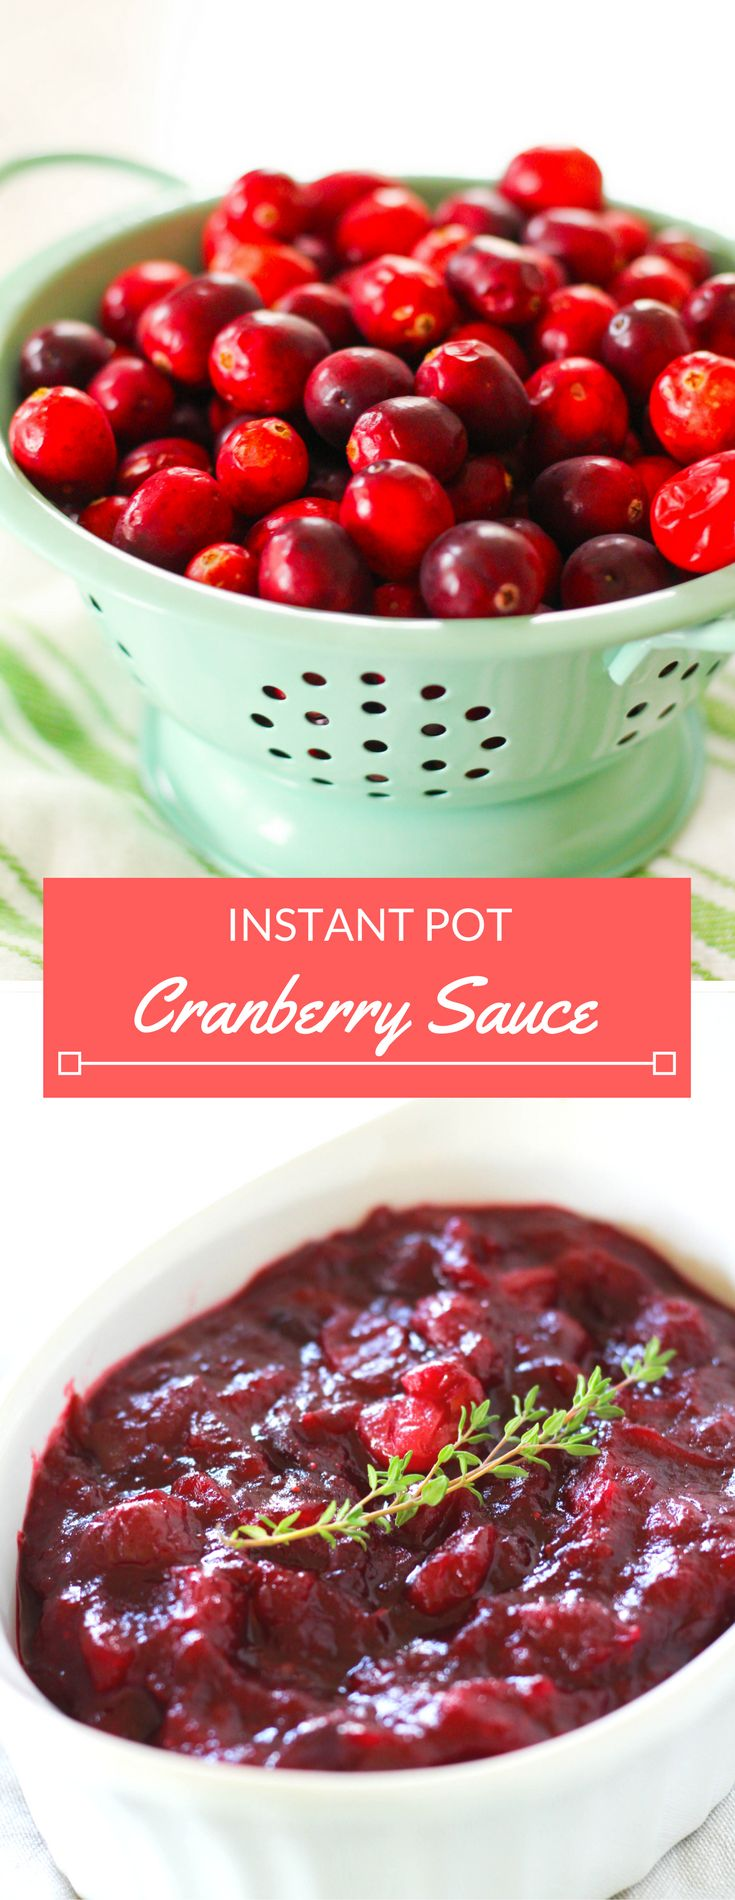 Cranberry sauce is a staple at most Thanksgiving dinners– learn how to make cranberry sauce from fresh cranberries in under ten minutes using your Instant Pot. This Instant Pot Cranberry Sauce will be a delicious accompanimentto your Thanksgiving feast! It's time for recipe #3 in my Instant Pot Thanksgiving series! In case you missed it,...Read On →